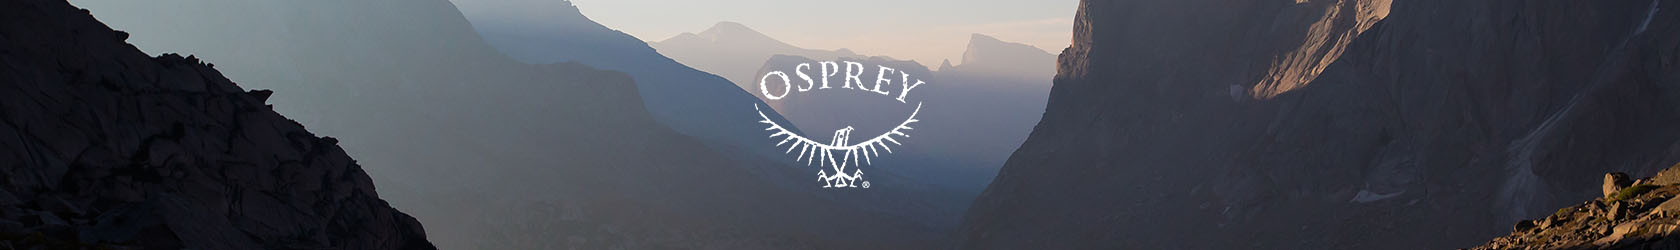 A couple with Osprey backpacks packing up after camping in rocky mountains